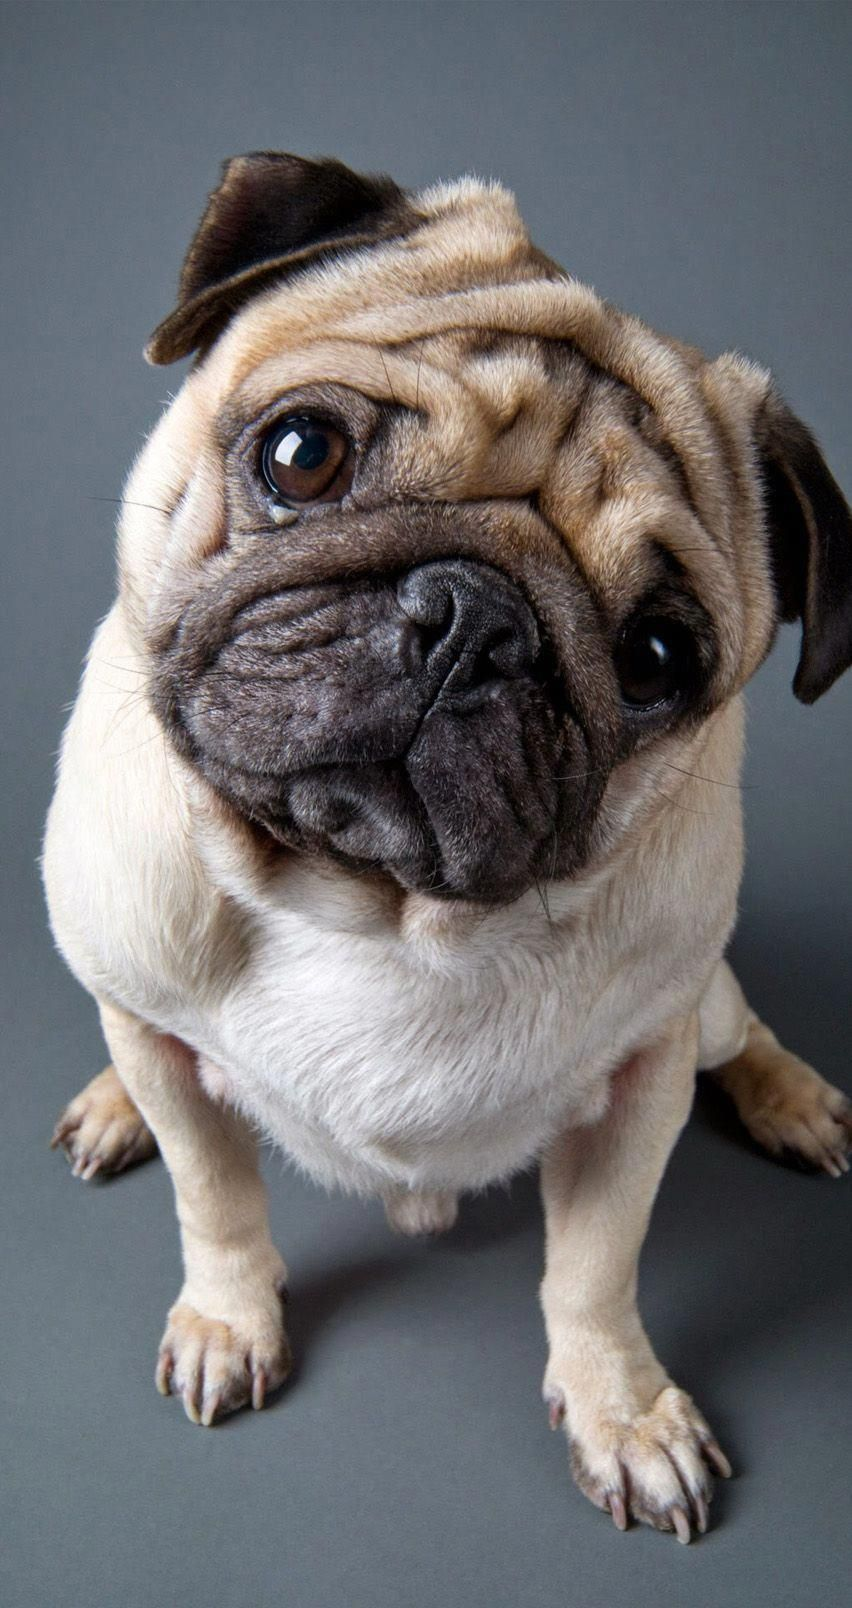 Cute Pug 852 X 1608 Wallpapers Available For Free Download Cute Pugs Pugs Pug Dog